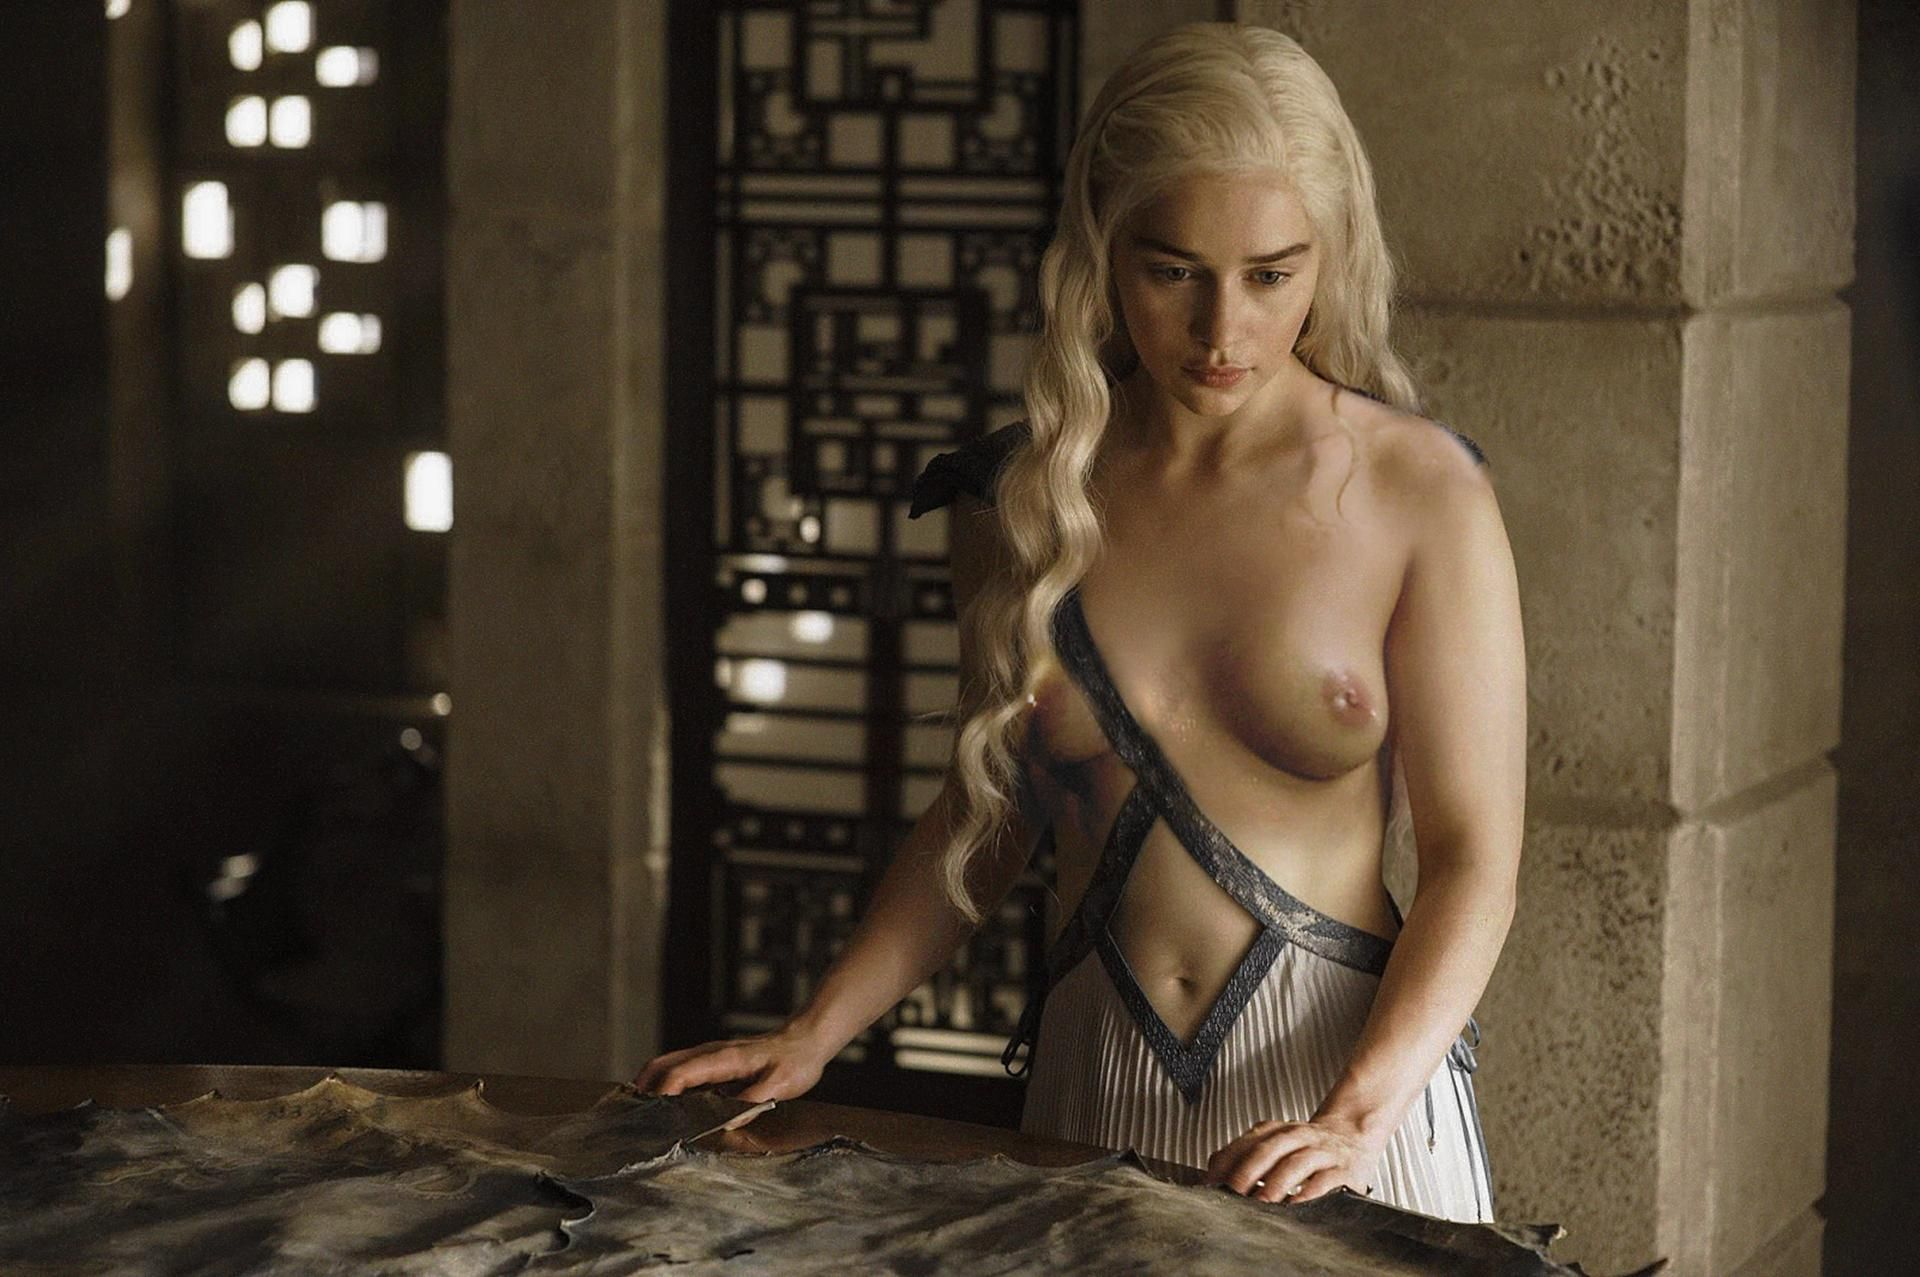 game of thrones nude Scandal Planet